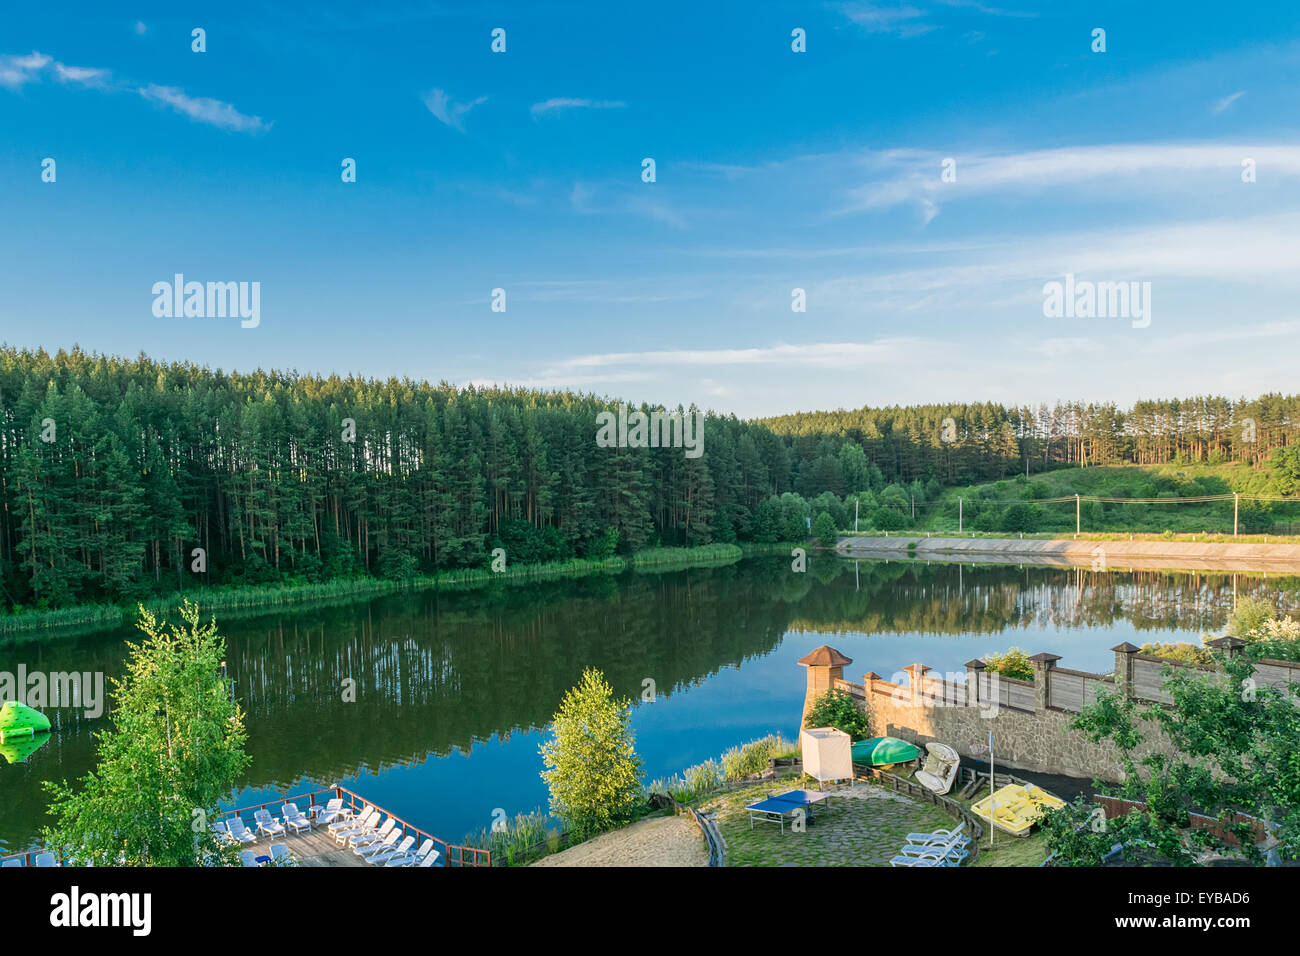 Resting place on the beach on the shores of an artificial lake near the edge of the forest - Stock Image